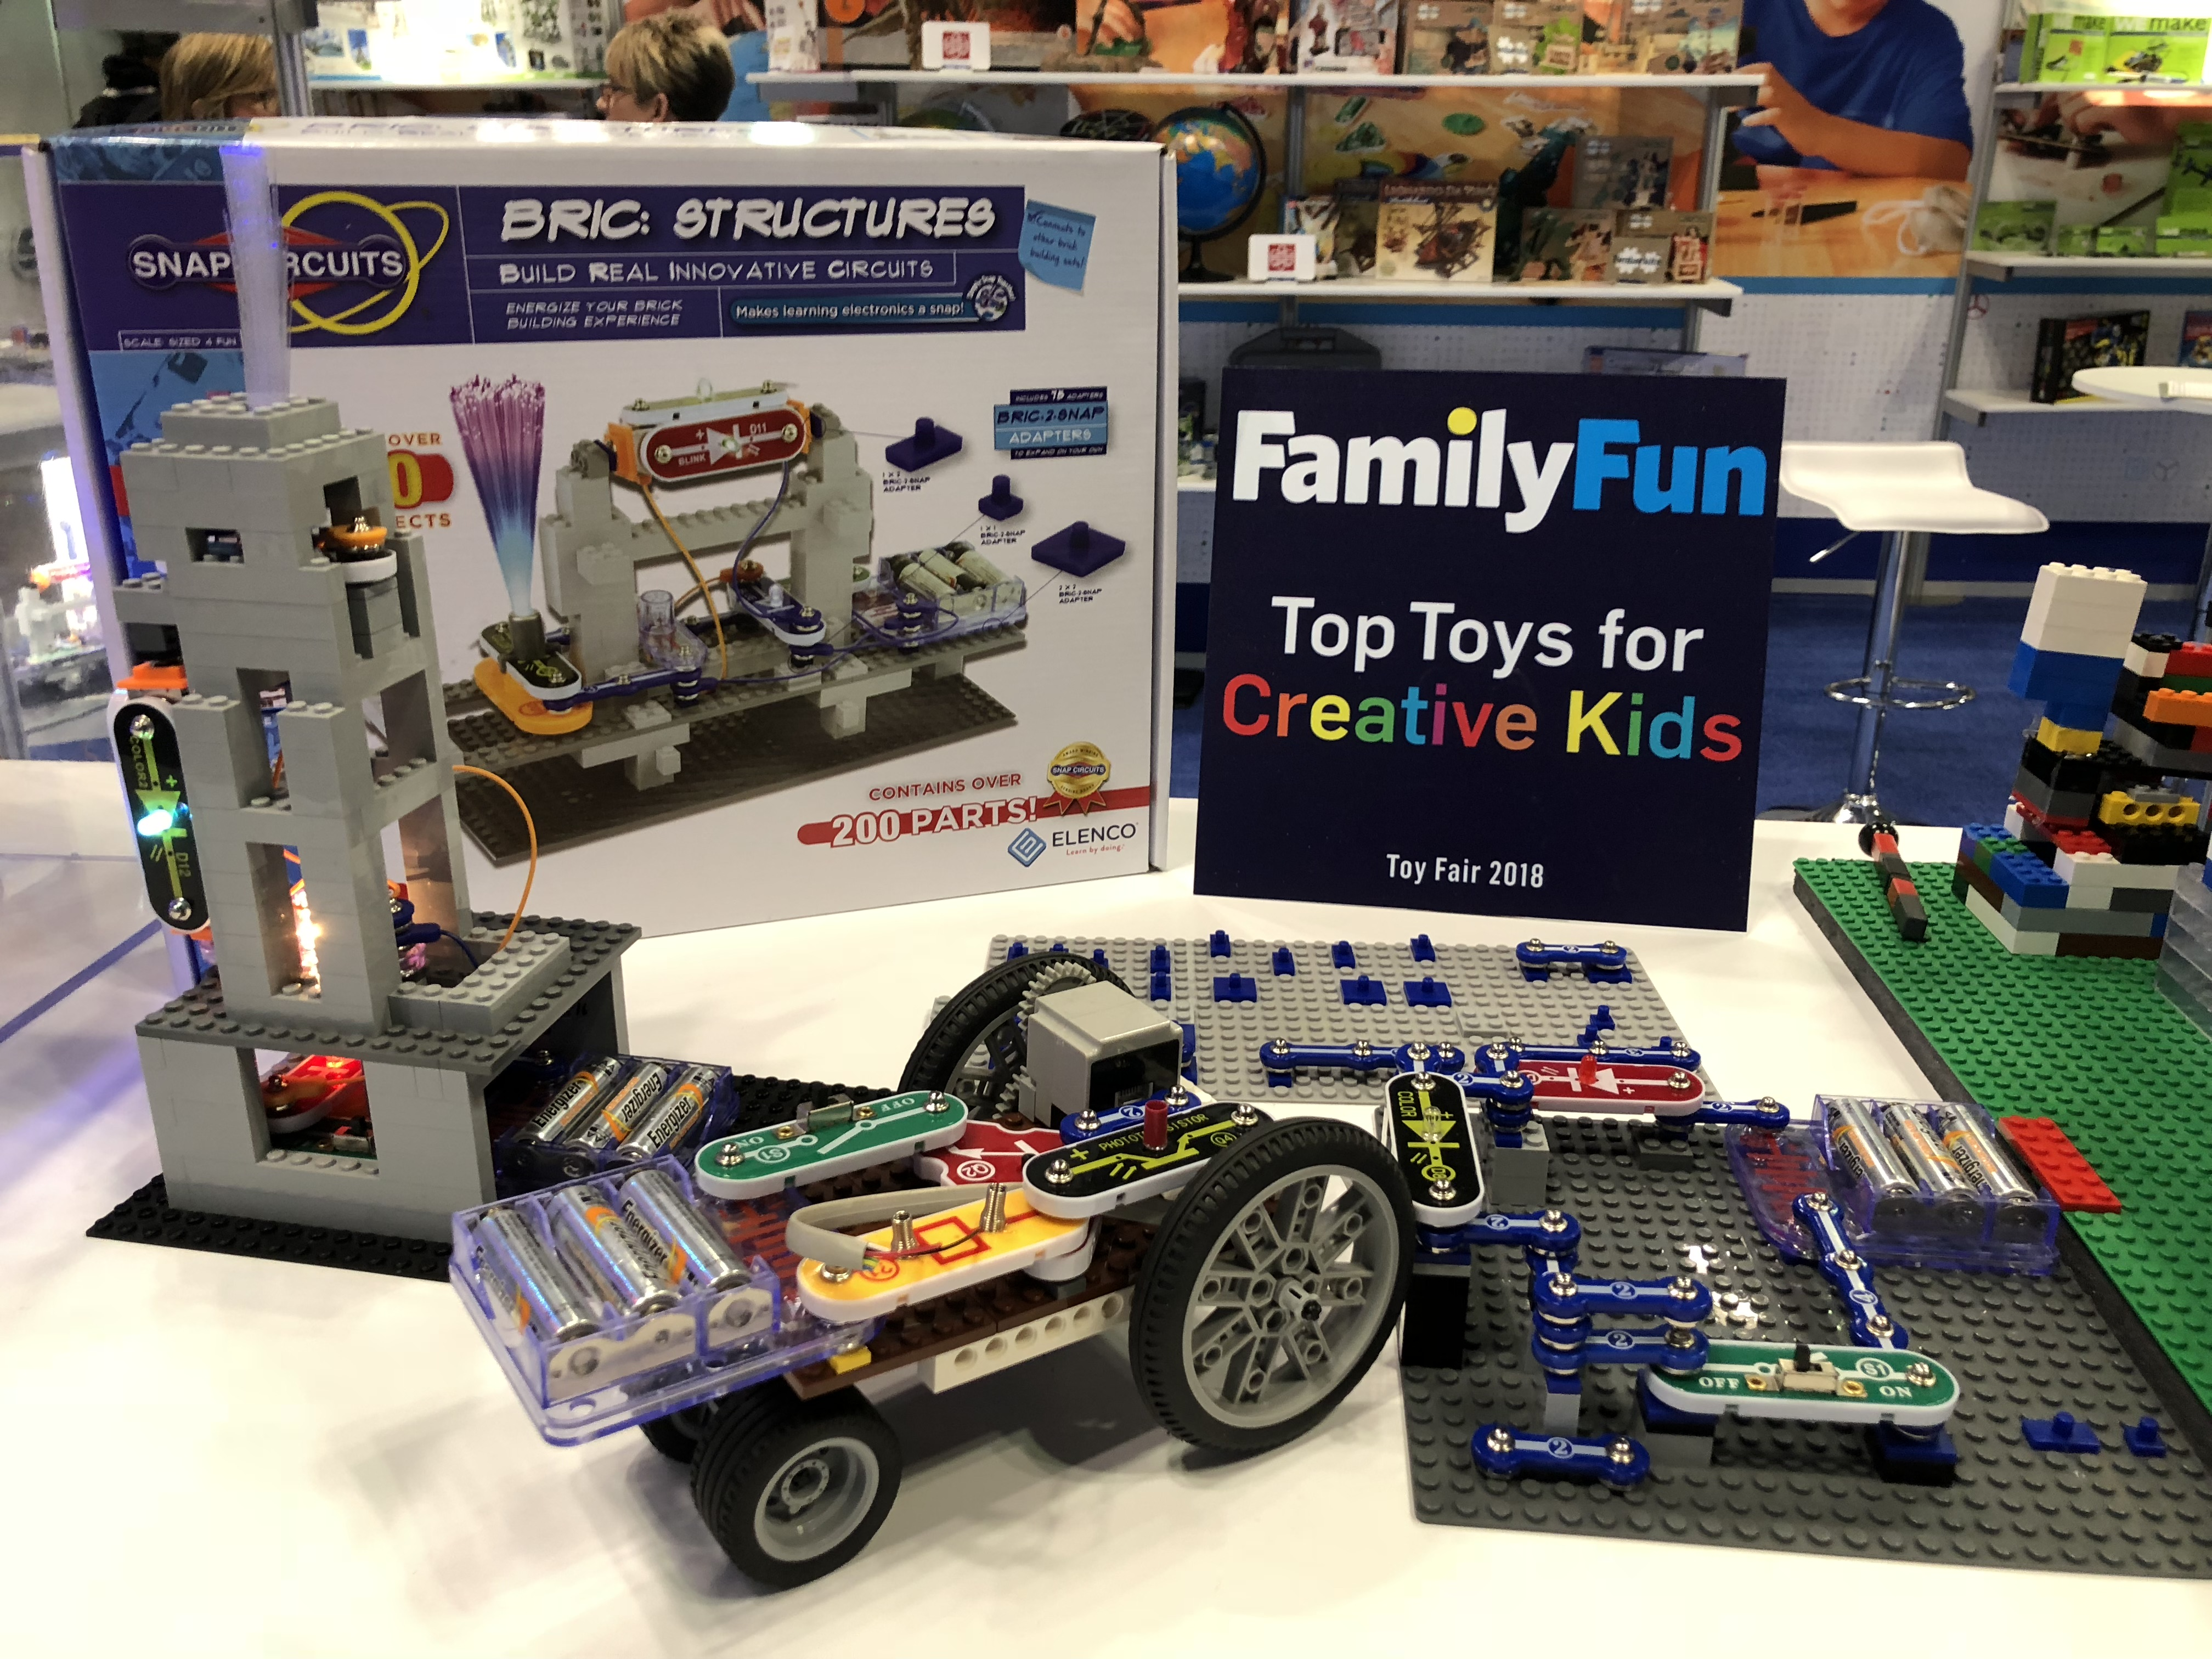 Awarded TOP TOYS FOR CREATIVE KIDS!